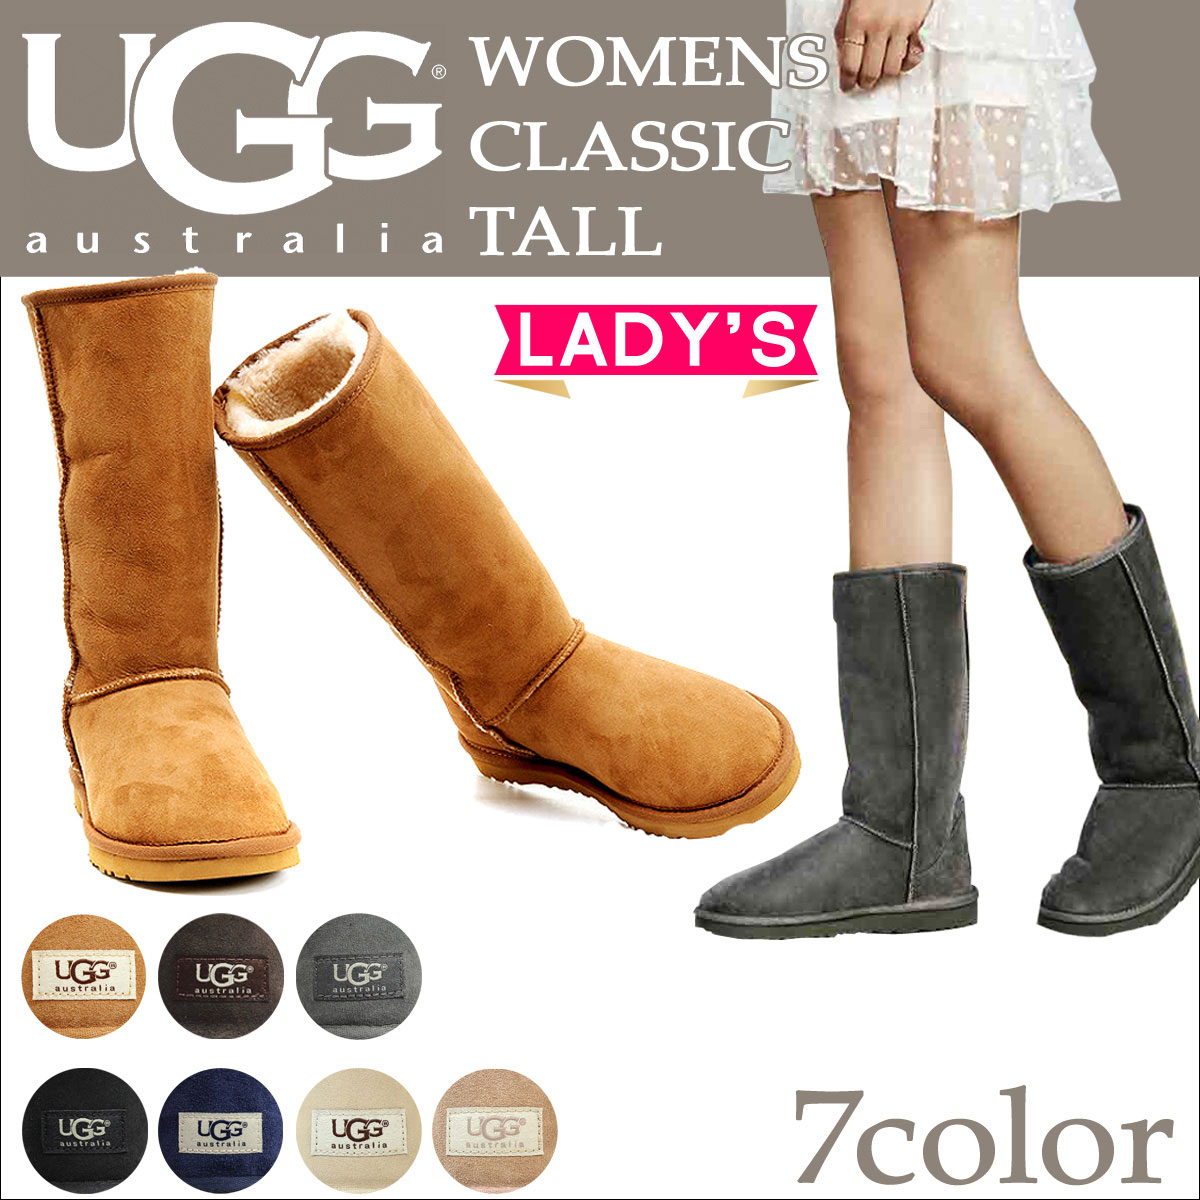 «Booking products» «11 / 5 days will be in stock» ☆ 36% off ☆ UGG AG women's classic tall Sheepskin boots WOMENS 5815 CLASSIC TALL women's 2013 FALL new ...